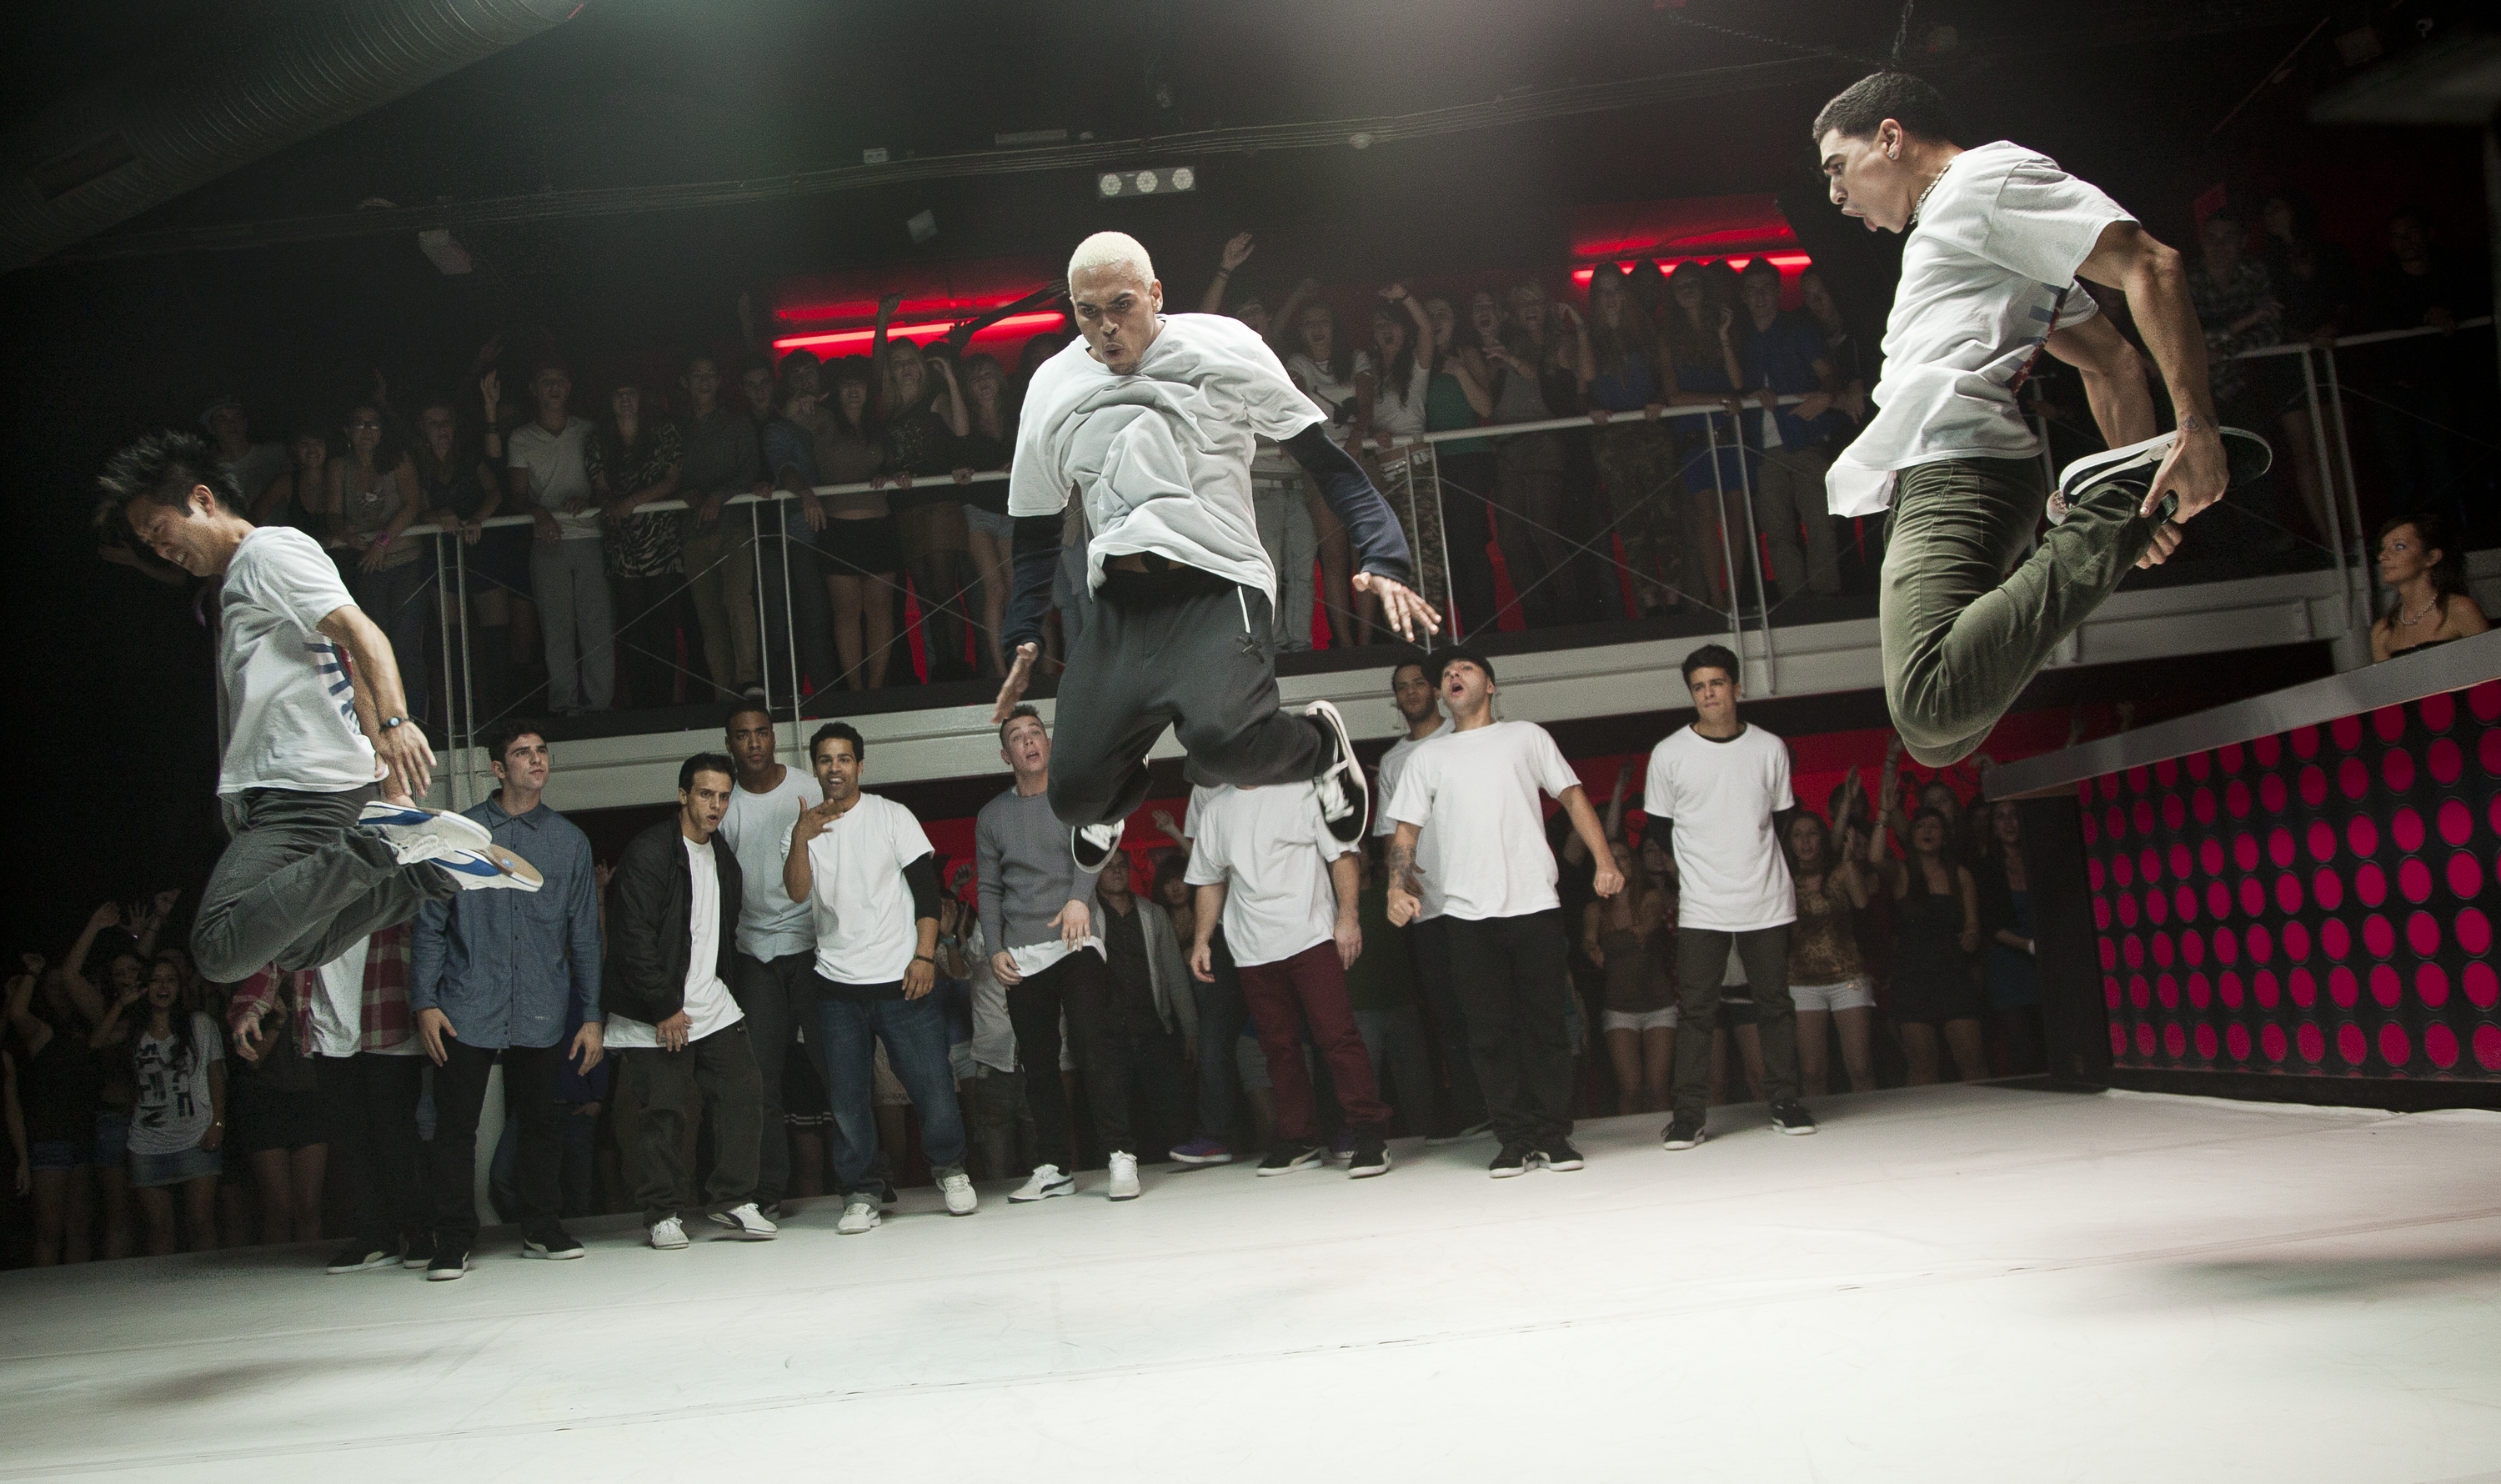 Team USA's b-boys (including rapper Chris Brown, center) perform in competition. (Photo: Sony Pictures)